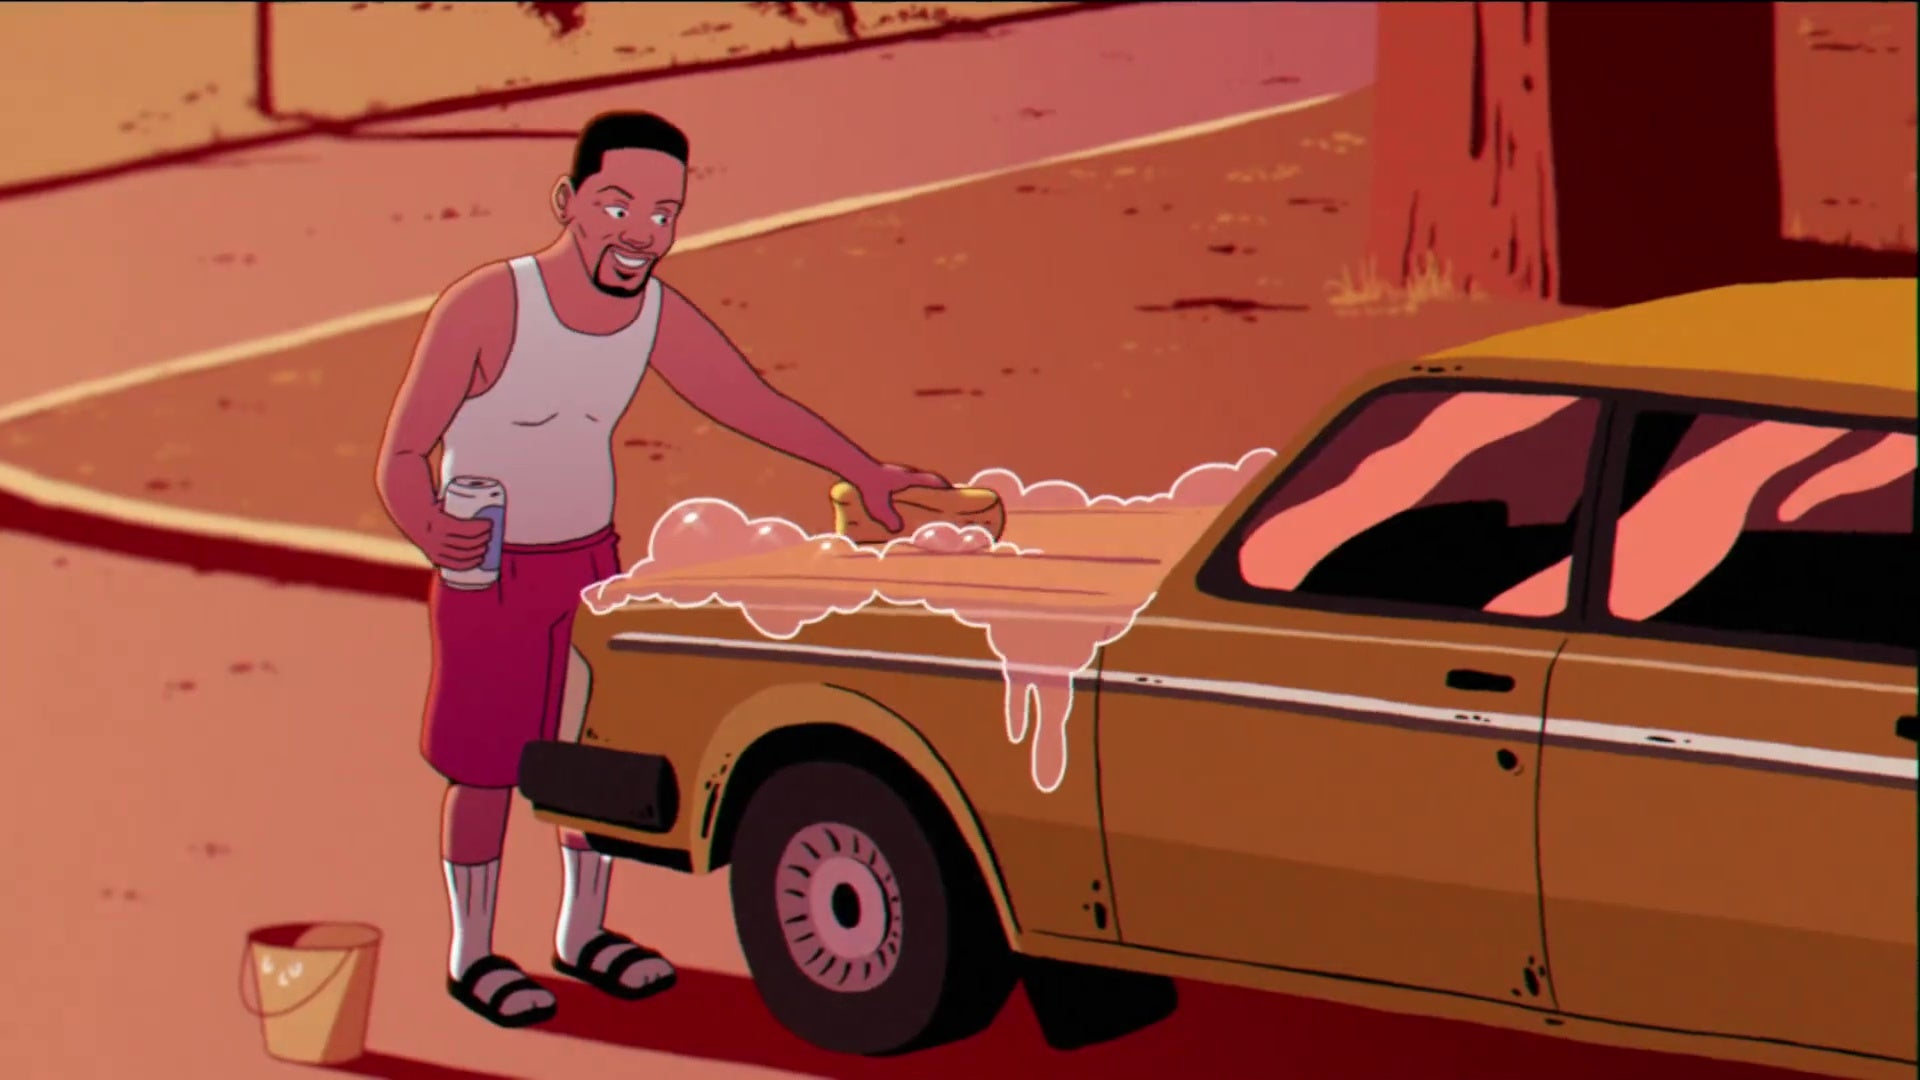 An animated version of Will Smith, wearing socks and sandals, washing his car down.